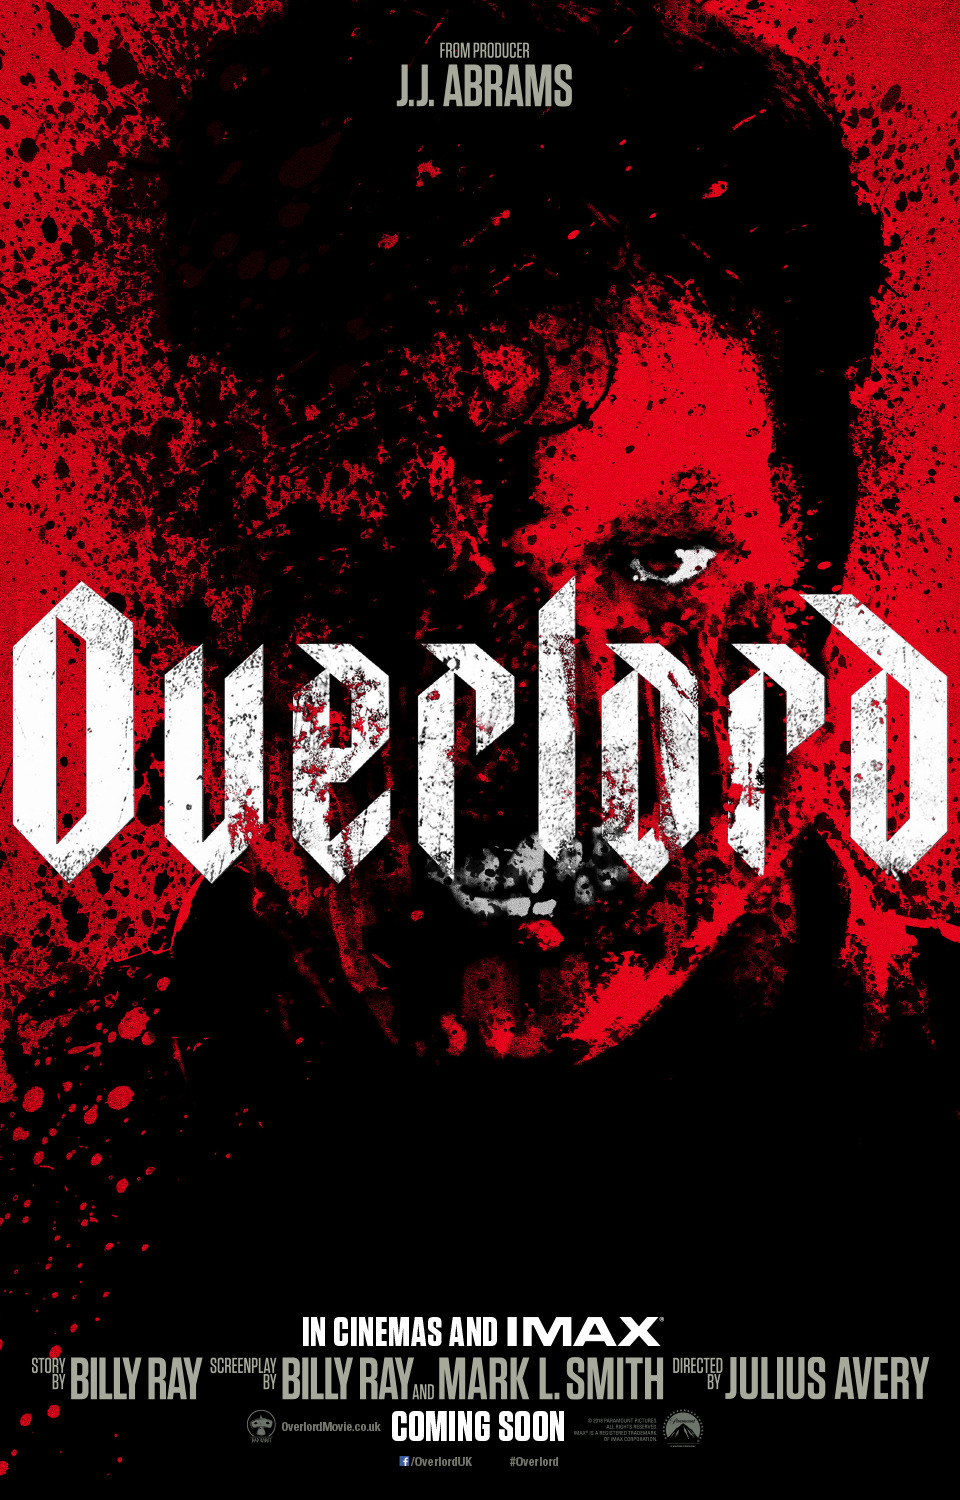 Overlord film review: soldiers vs Nazi monsters in Bad Robot's WW2 horror